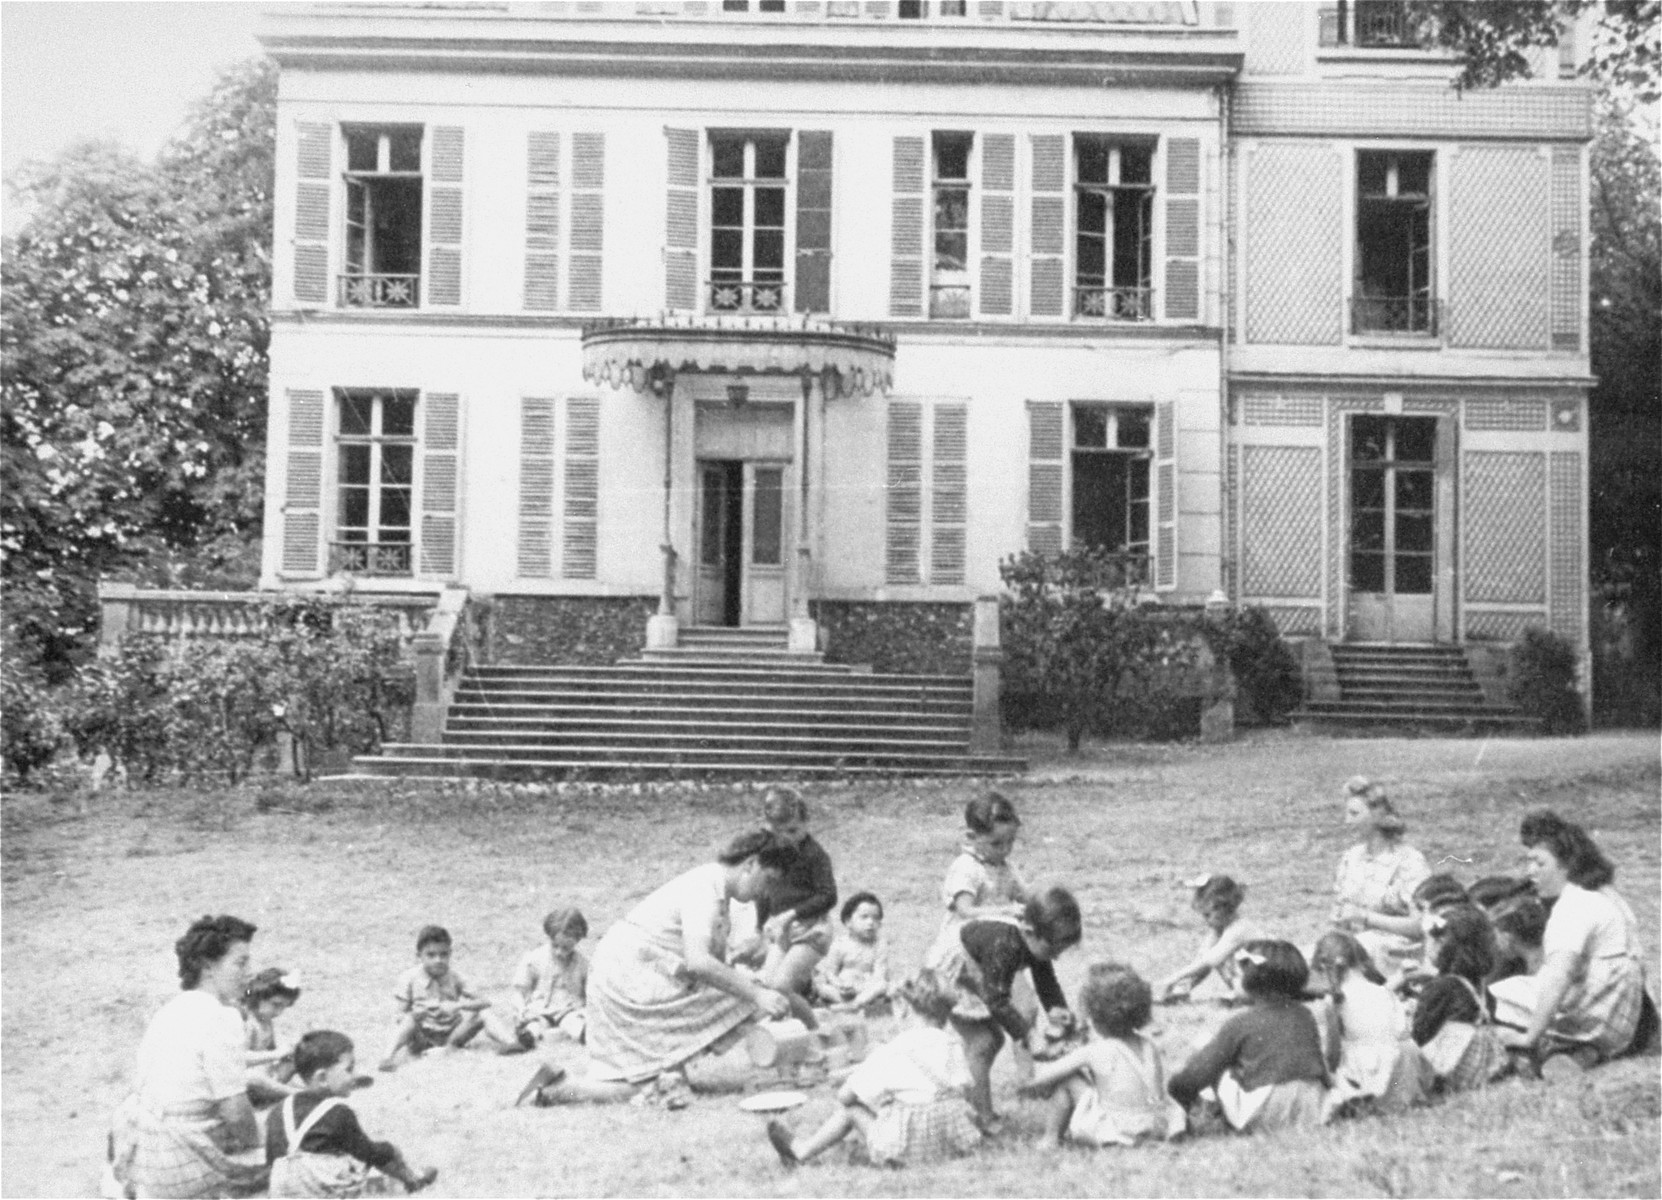 Children at play in the yard of Le Petite Monde children's home.